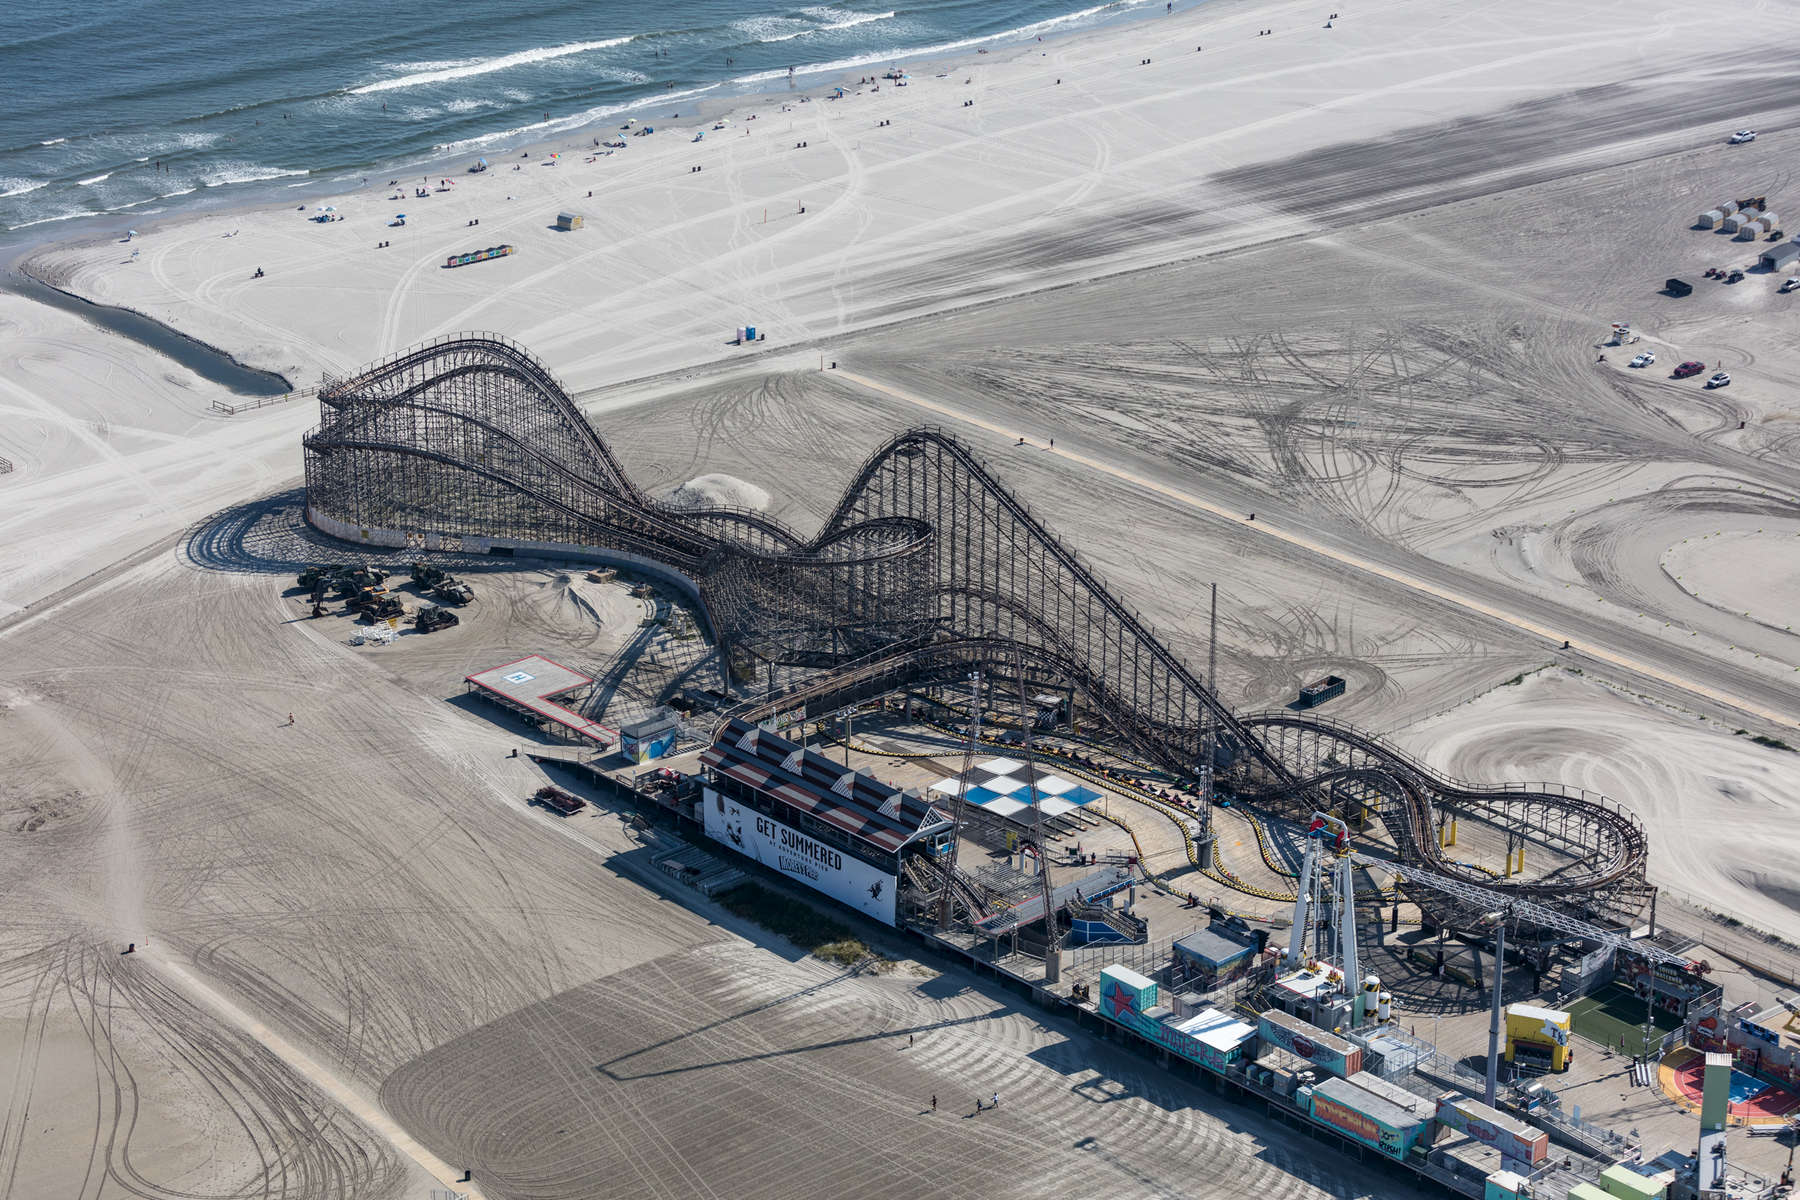 Wildwood Roller Coaster, Wildwood, New Jersey 2018 (180904-0558)